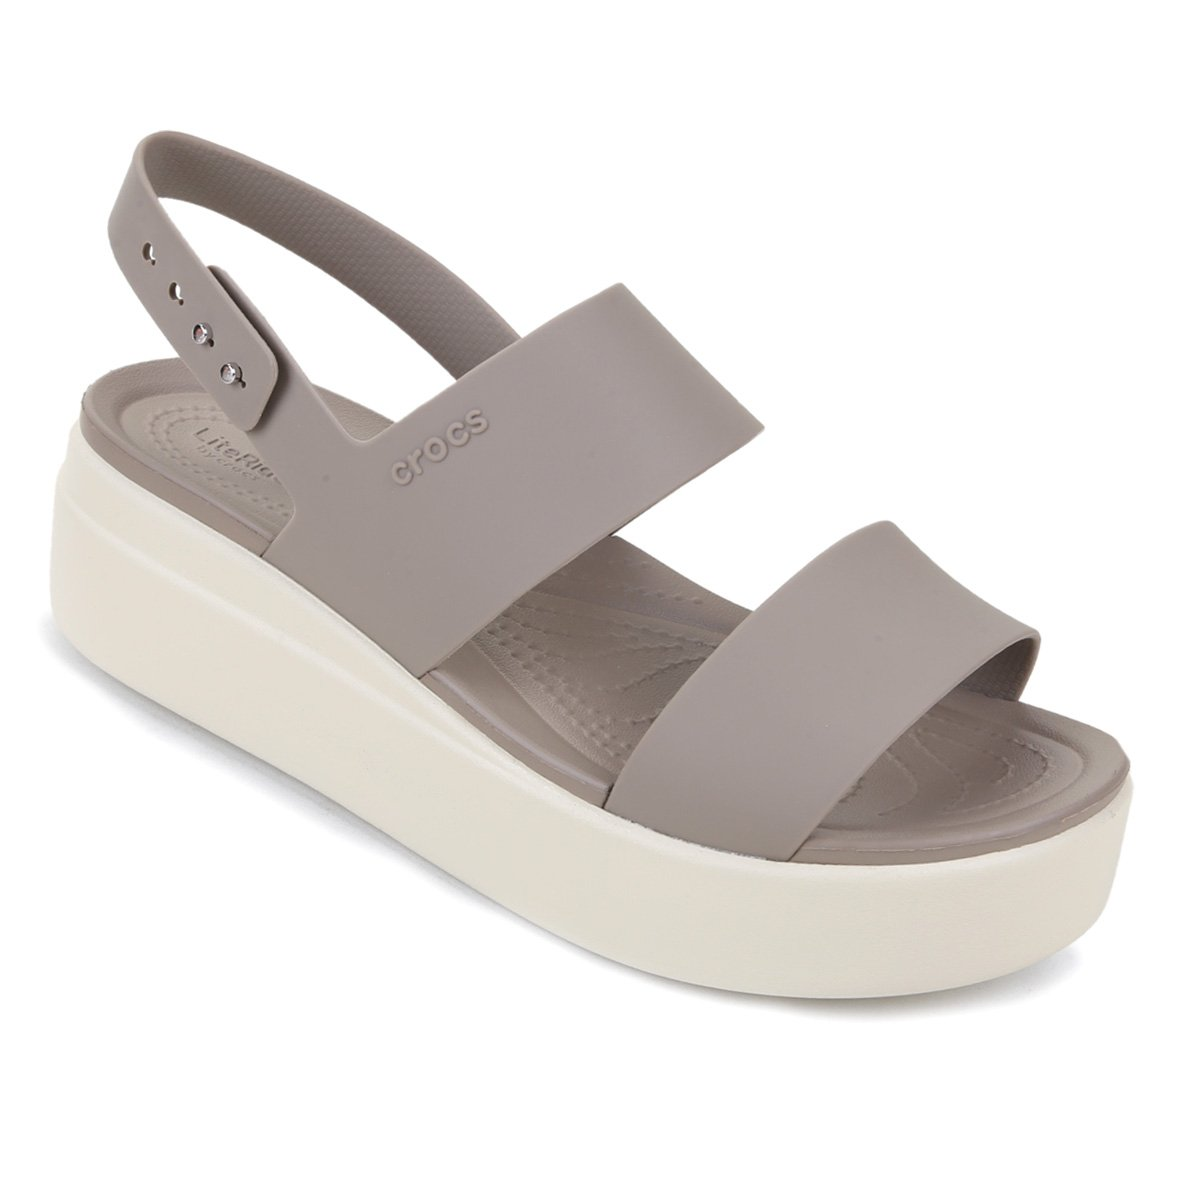 Sandália Flatform Crocs Brooklyn Low Wedge Feminina